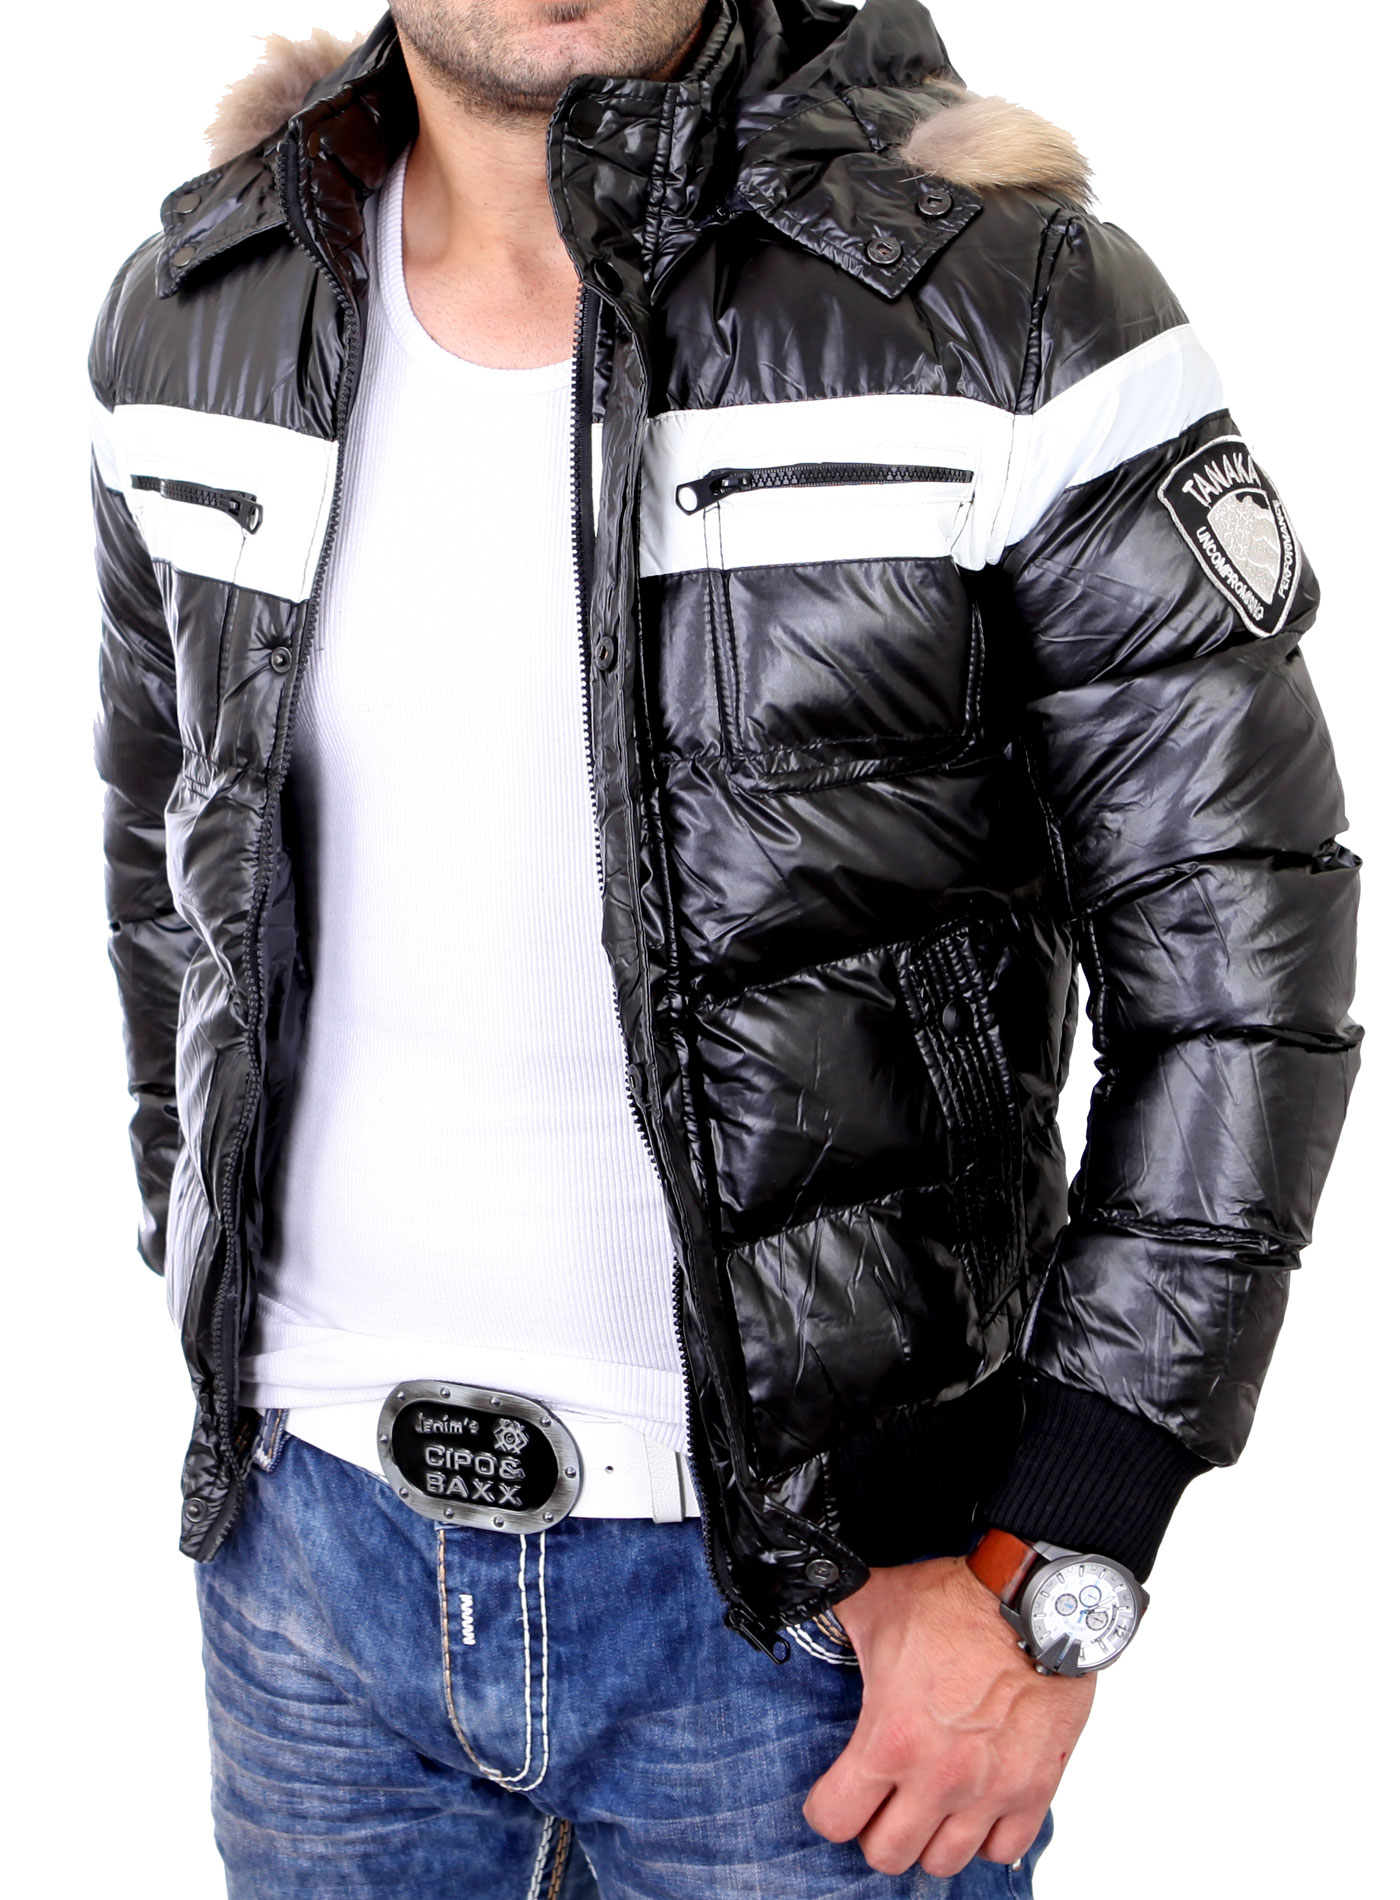 reslad herren jacke daunen glanz winterjacke mit fell kapuze rs 93a schwarz neu ebay. Black Bedroom Furniture Sets. Home Design Ideas